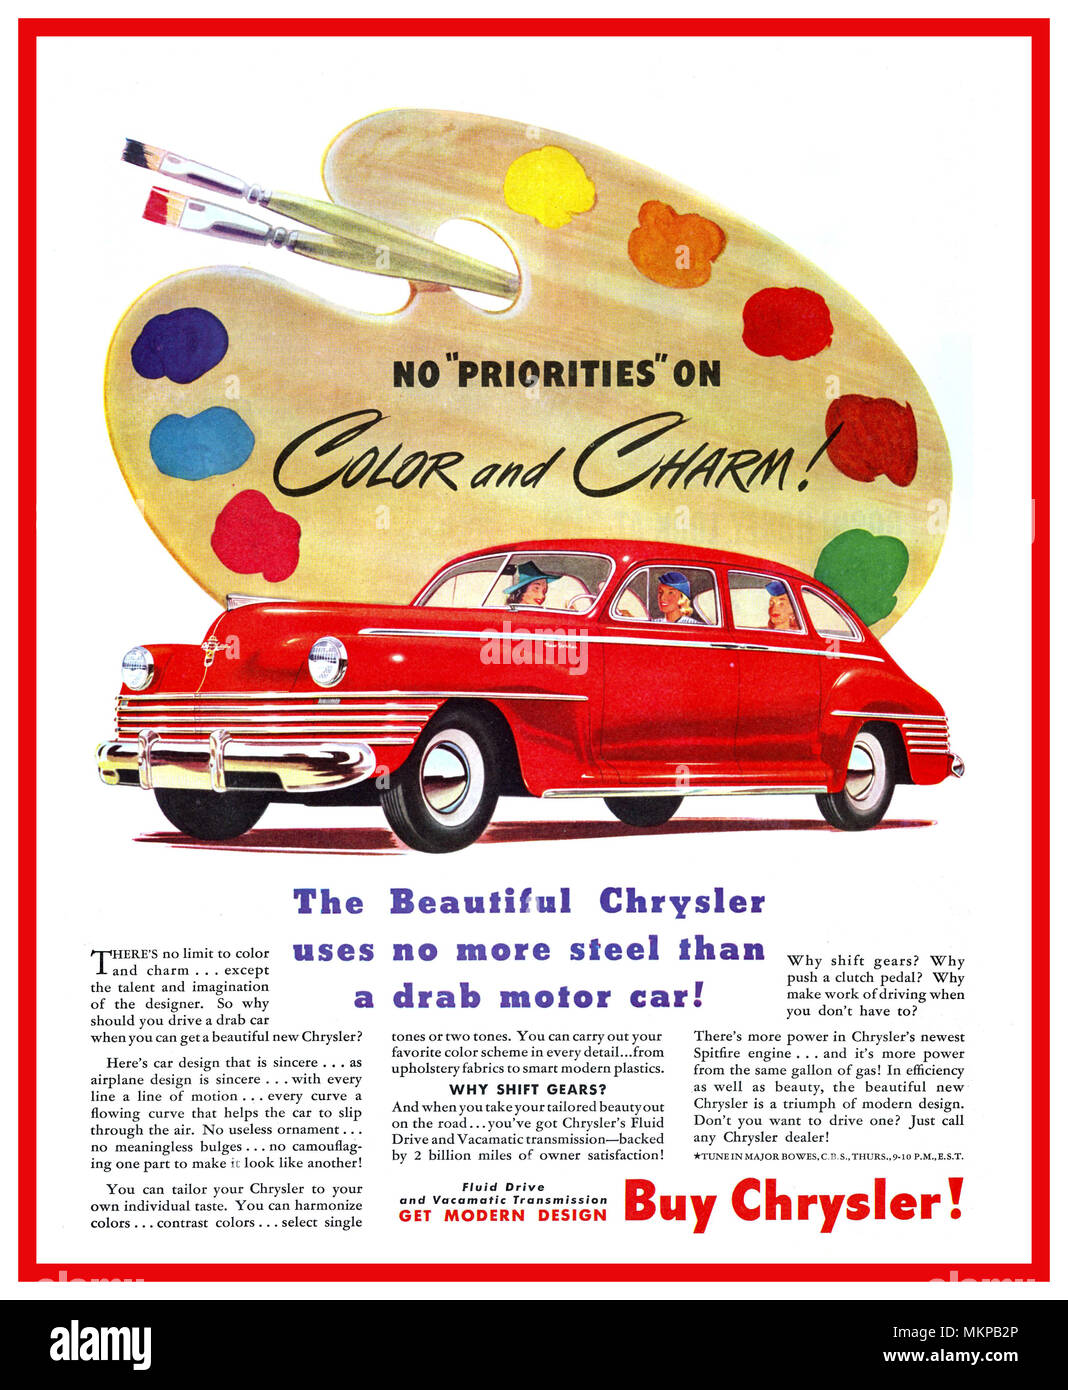 Chrysler New Yorker Stock Photos Images 1942 Convertible 1940s Vintage American Car Manufactured During Ww2 The Sedan No Priorities